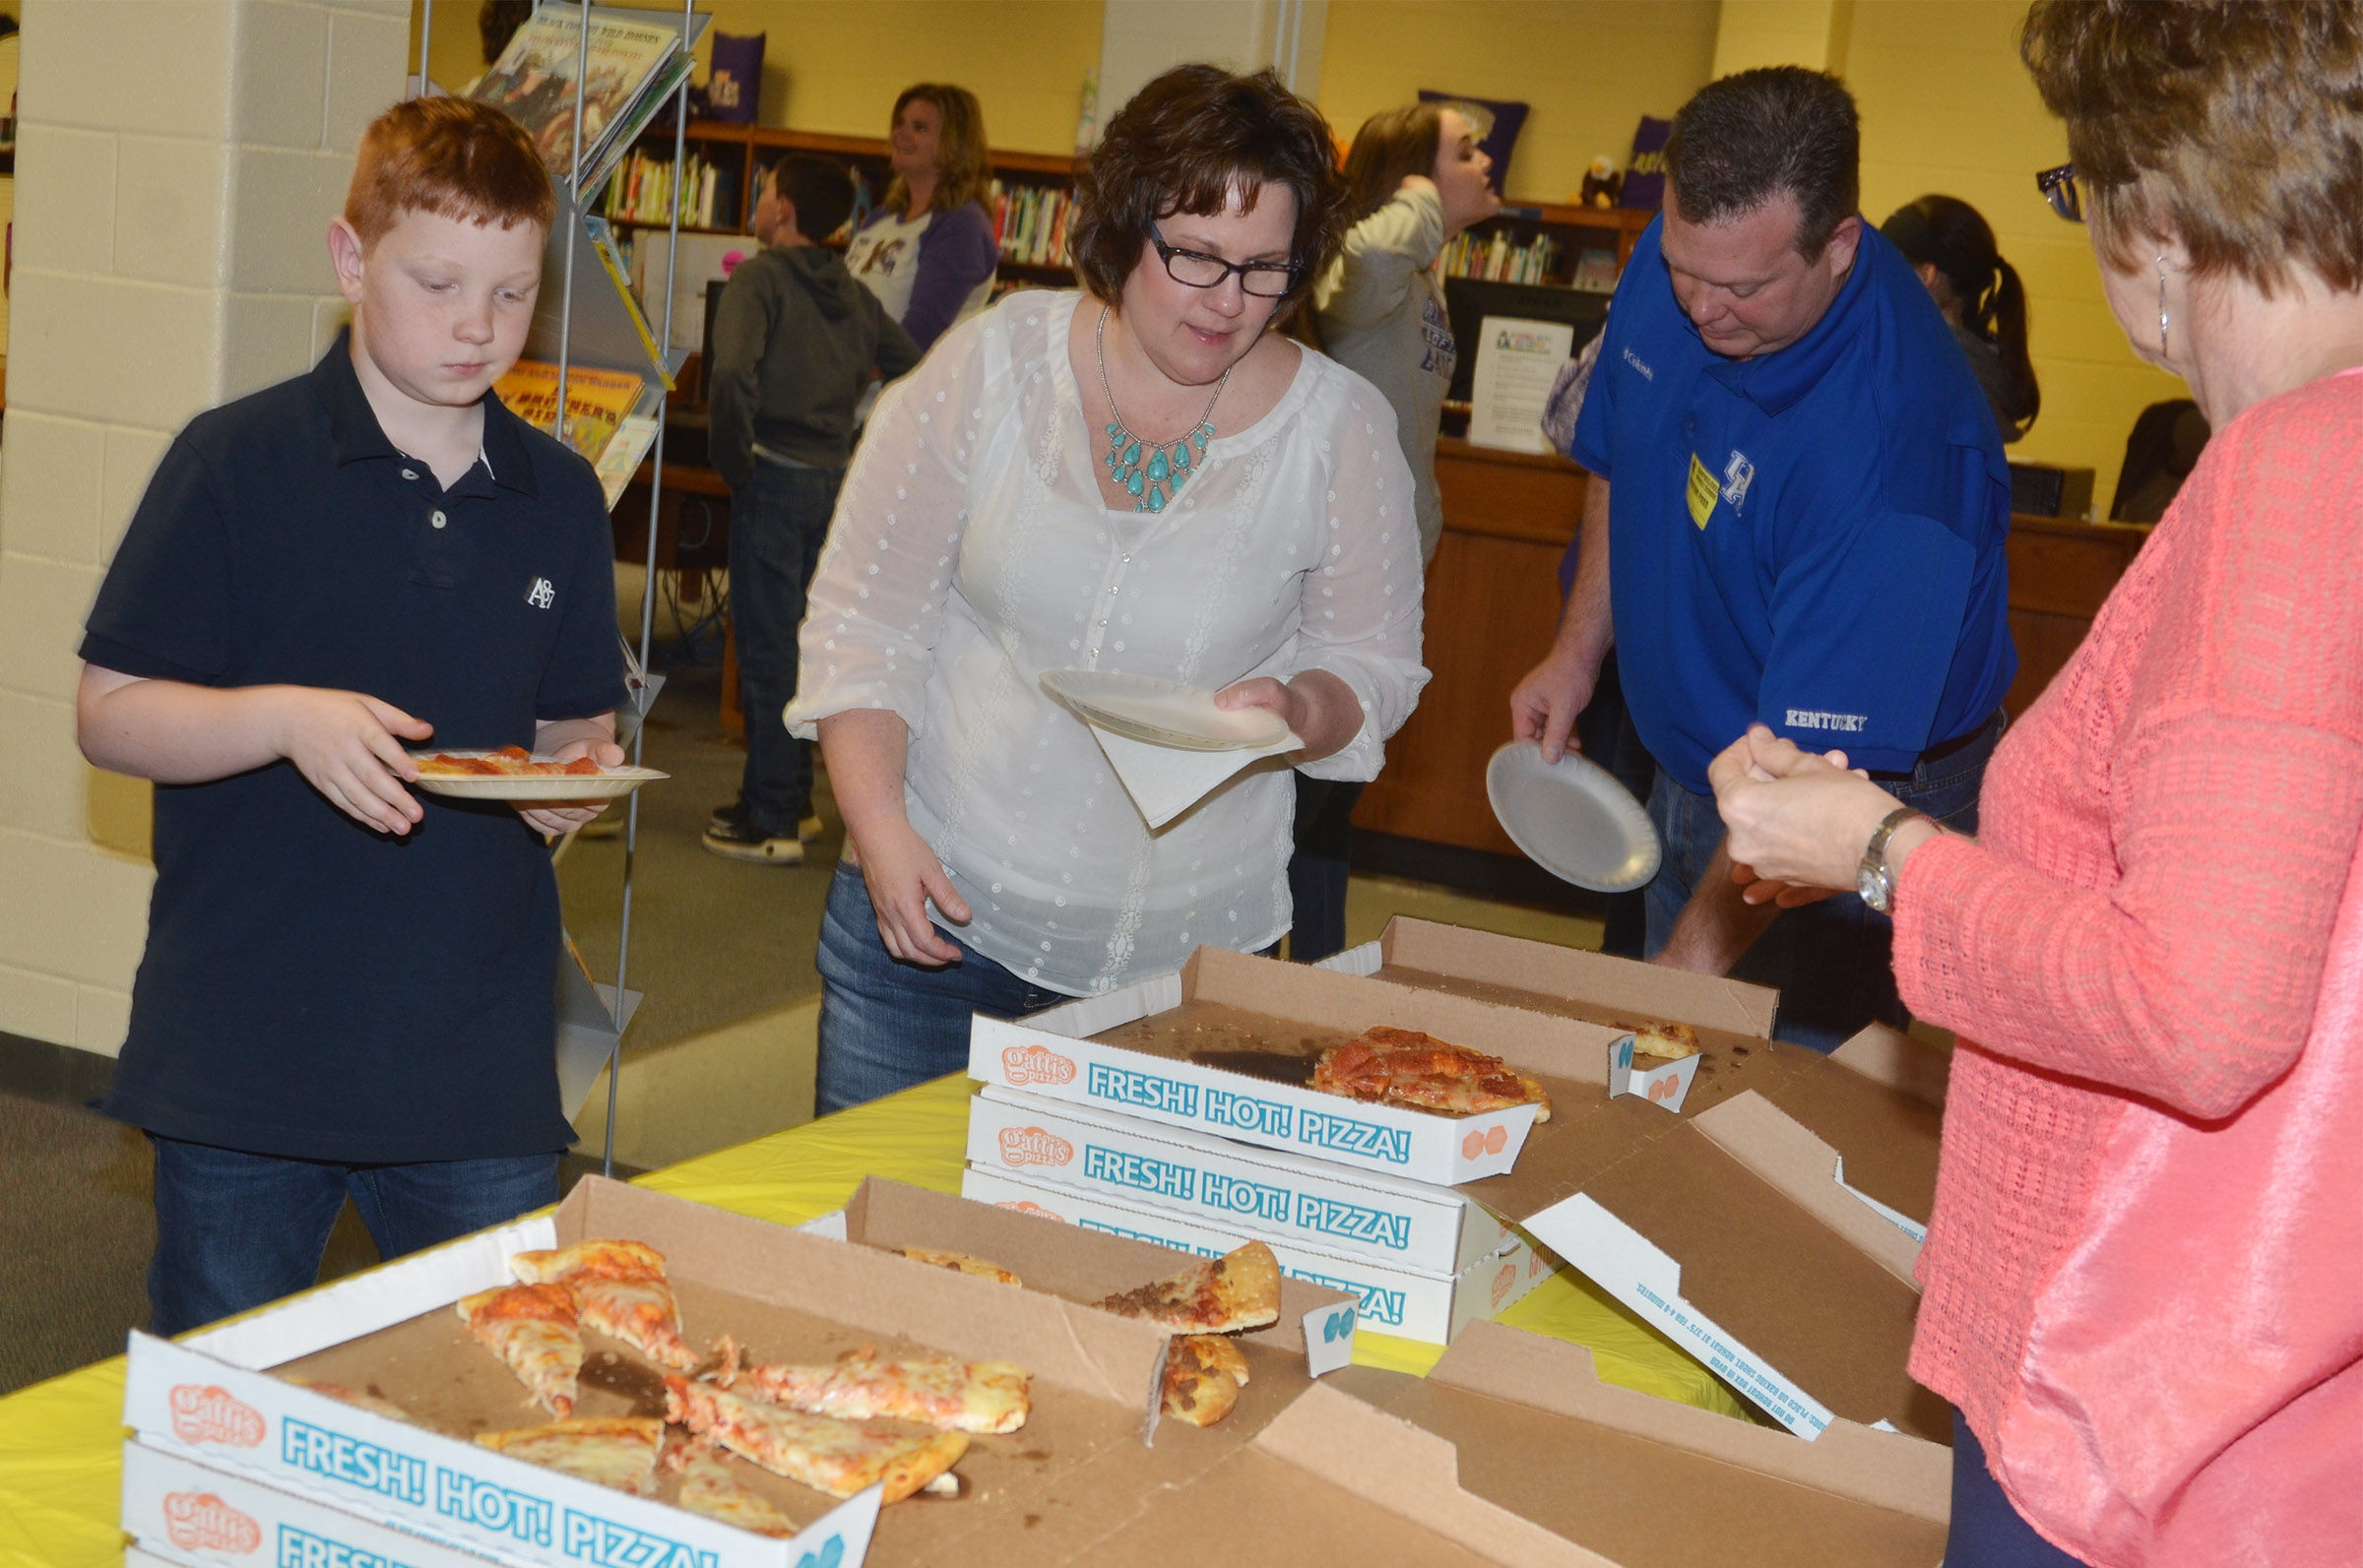 CMS fifth-grader Conner Rinehart and his parents, Tracey and Greg, are treated to a special lunch. Mrs. Rinehart is a second-grade teacher at Campbellsville Elementary School.